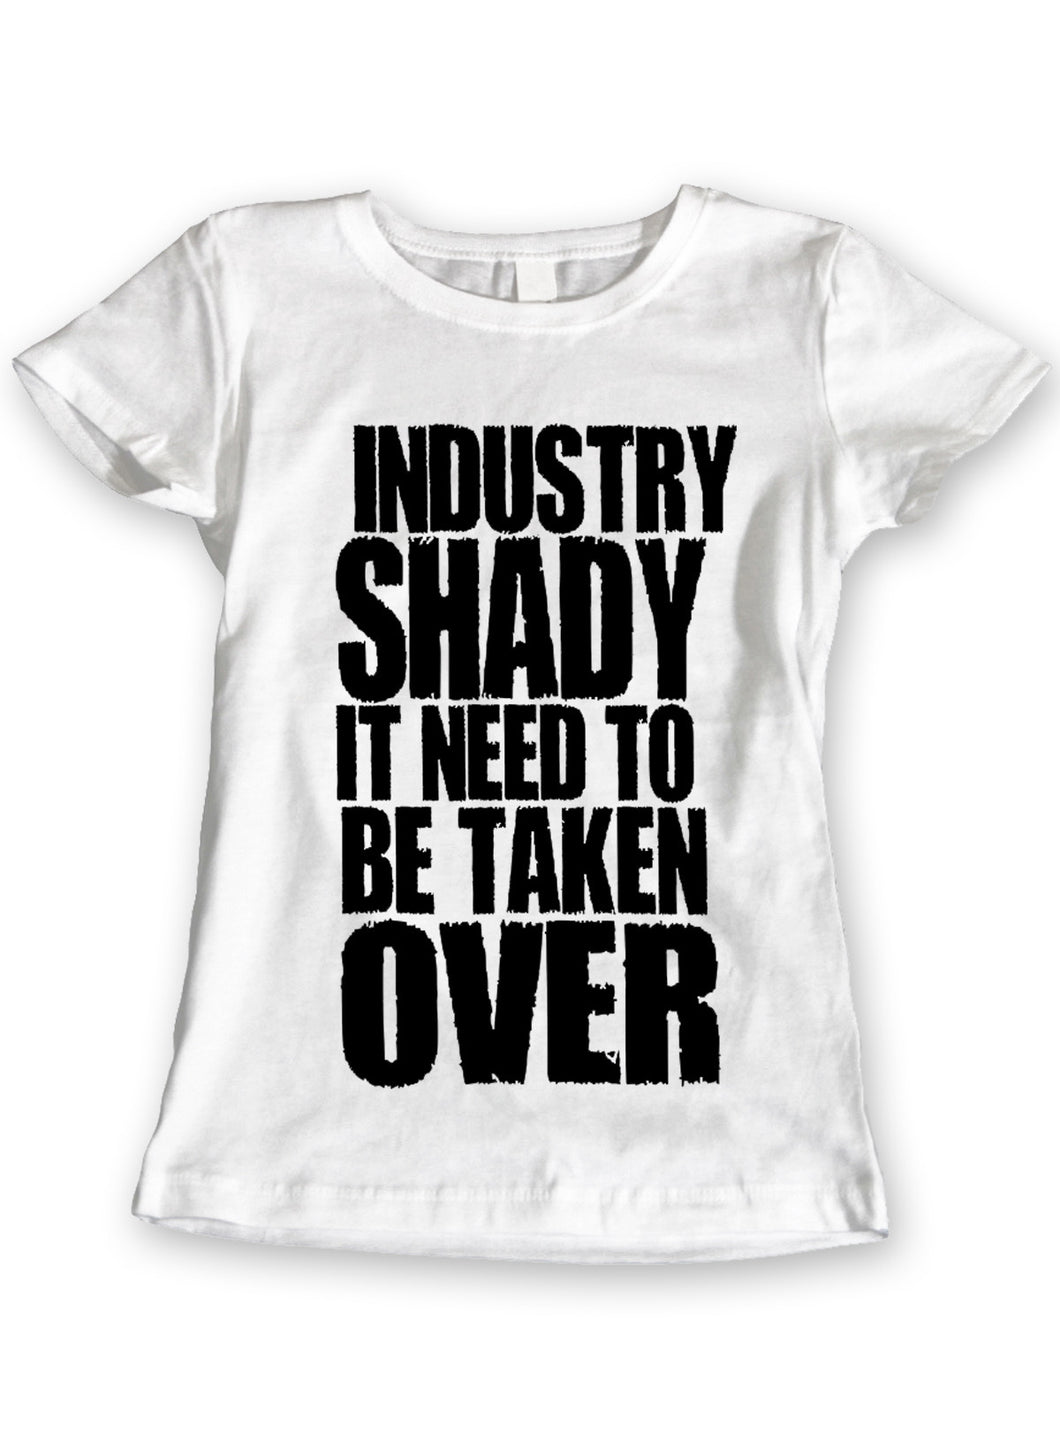 Industry shady (white)